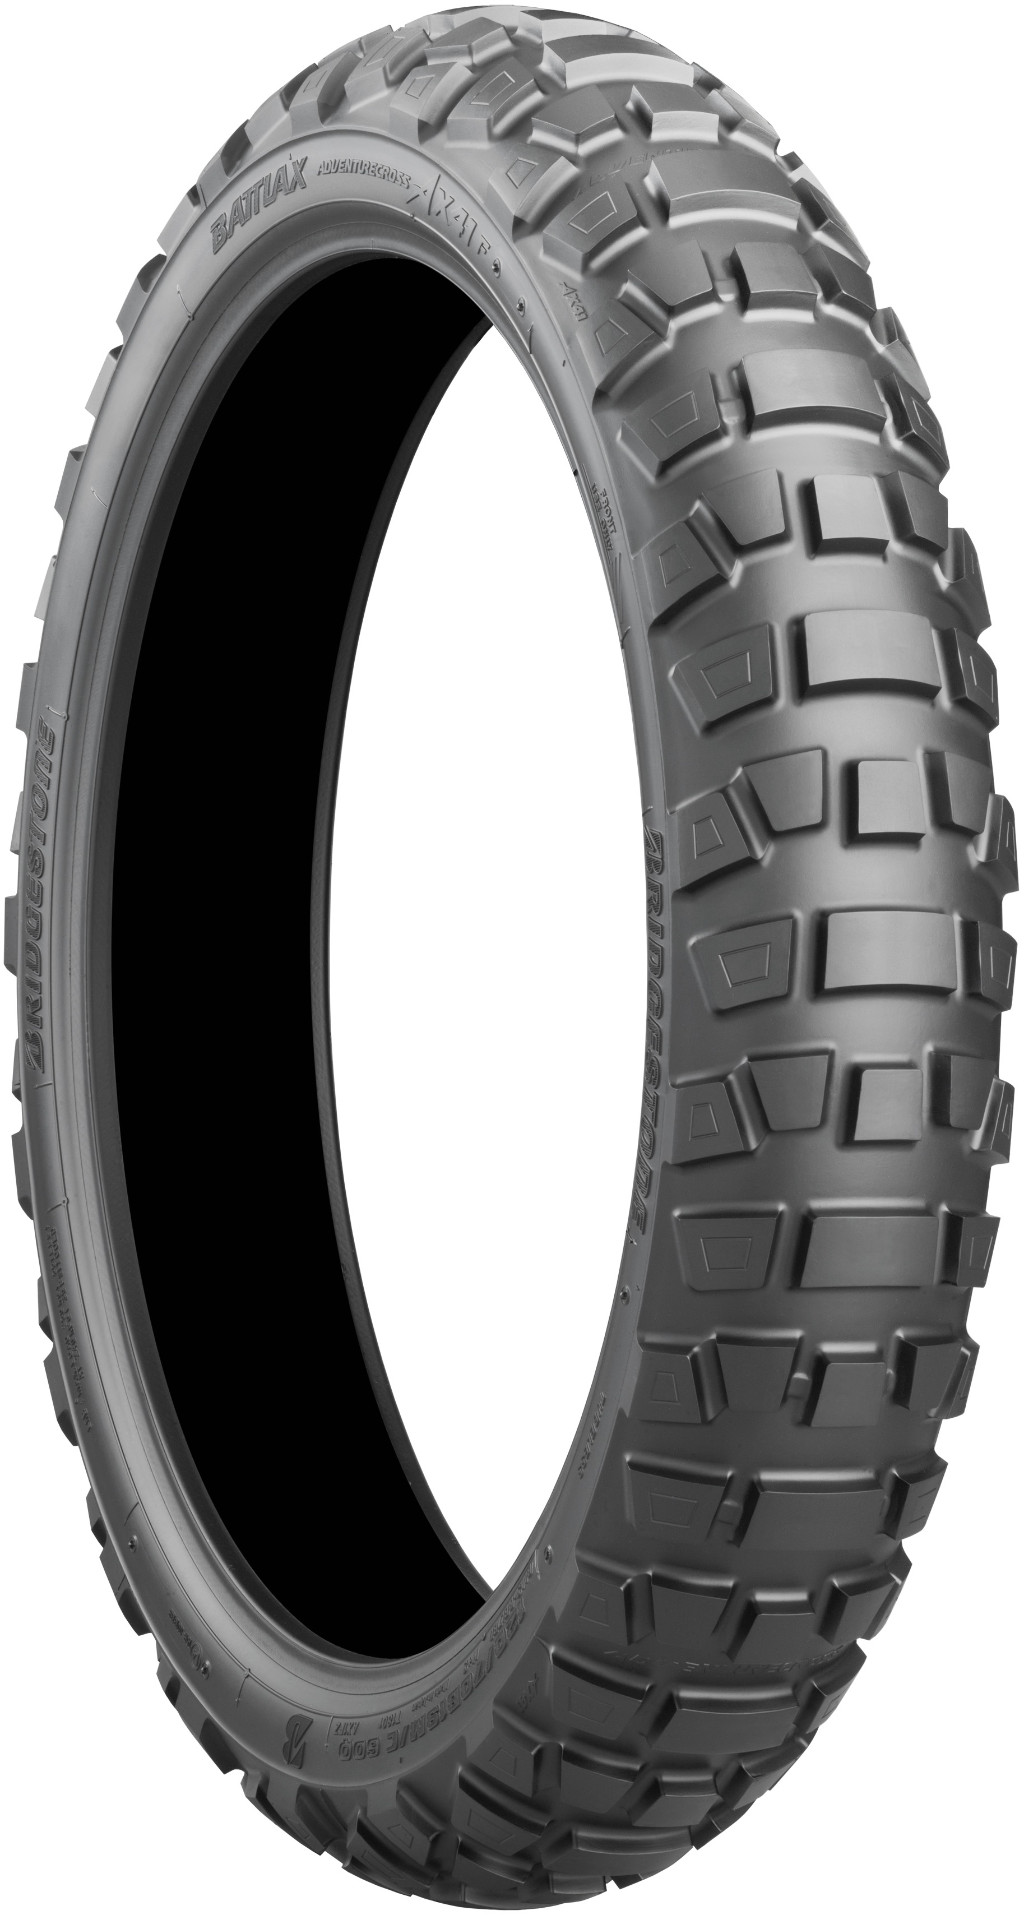 BRIDGESTONE BATTLAX ADVENTURECROSS AX41 [100 / 90-19M / C 57Q] BATTLAX Adven